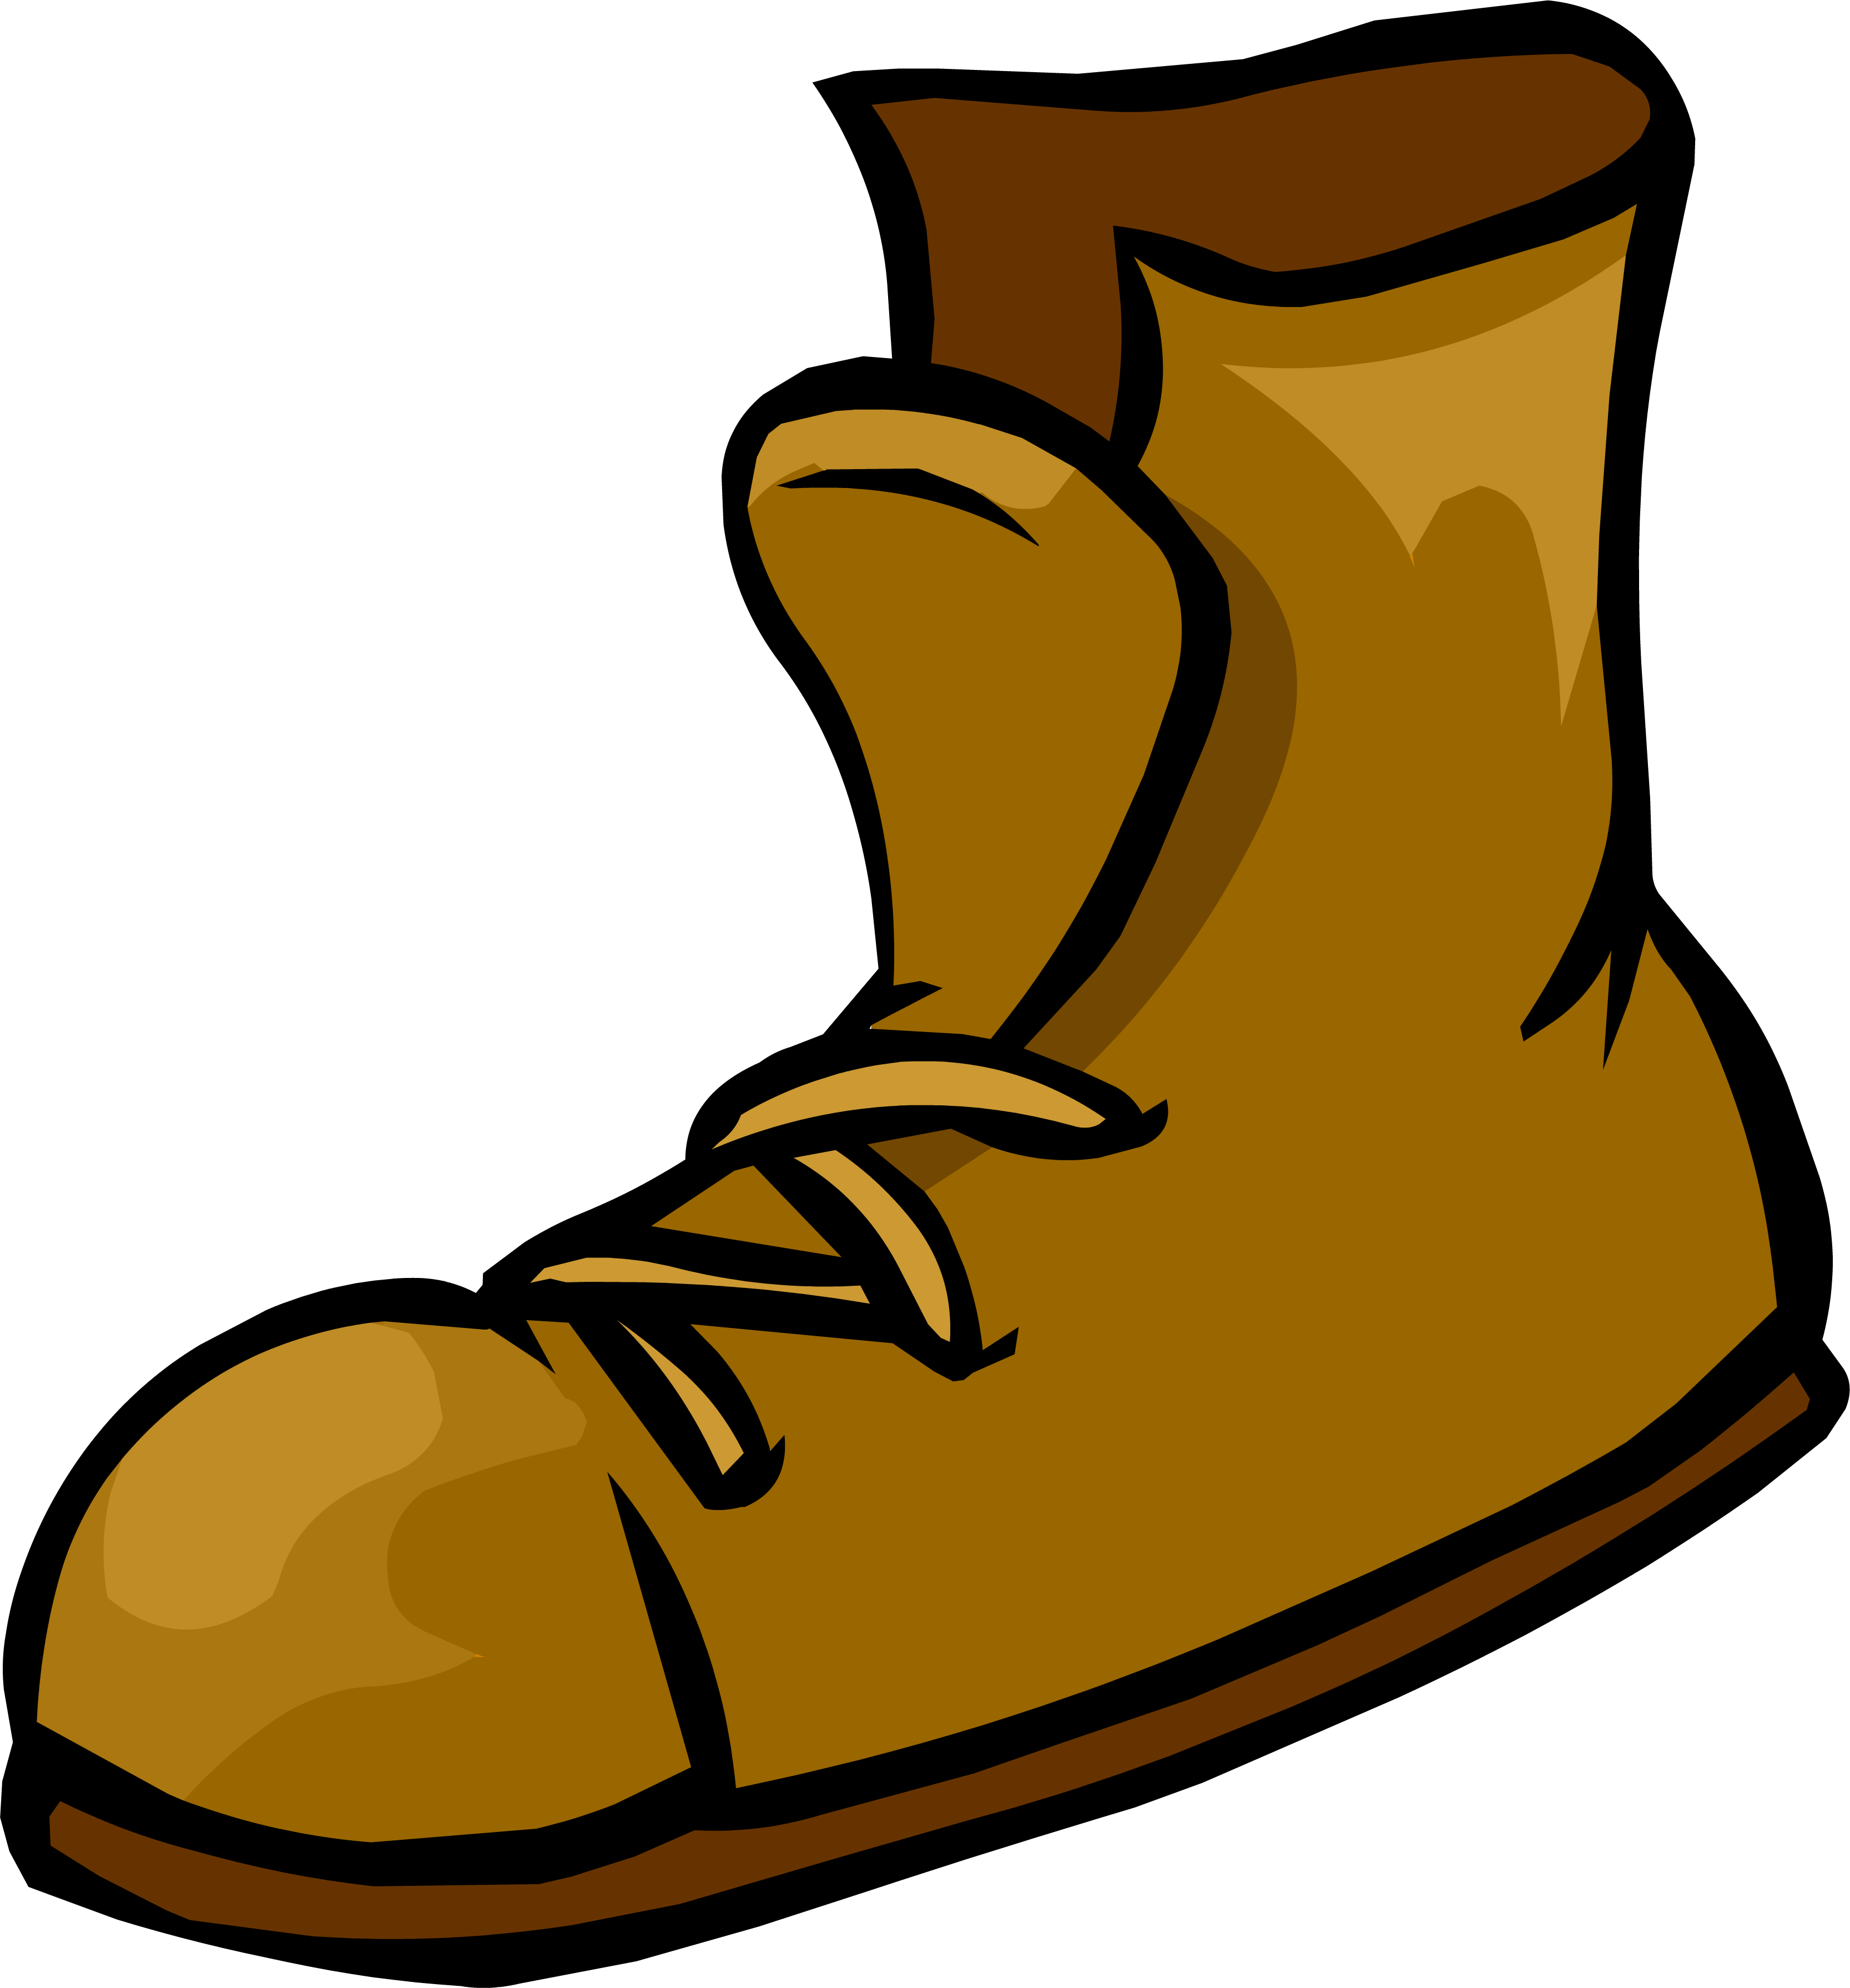 Image png club penguin. Transparent boot shoe svg free library